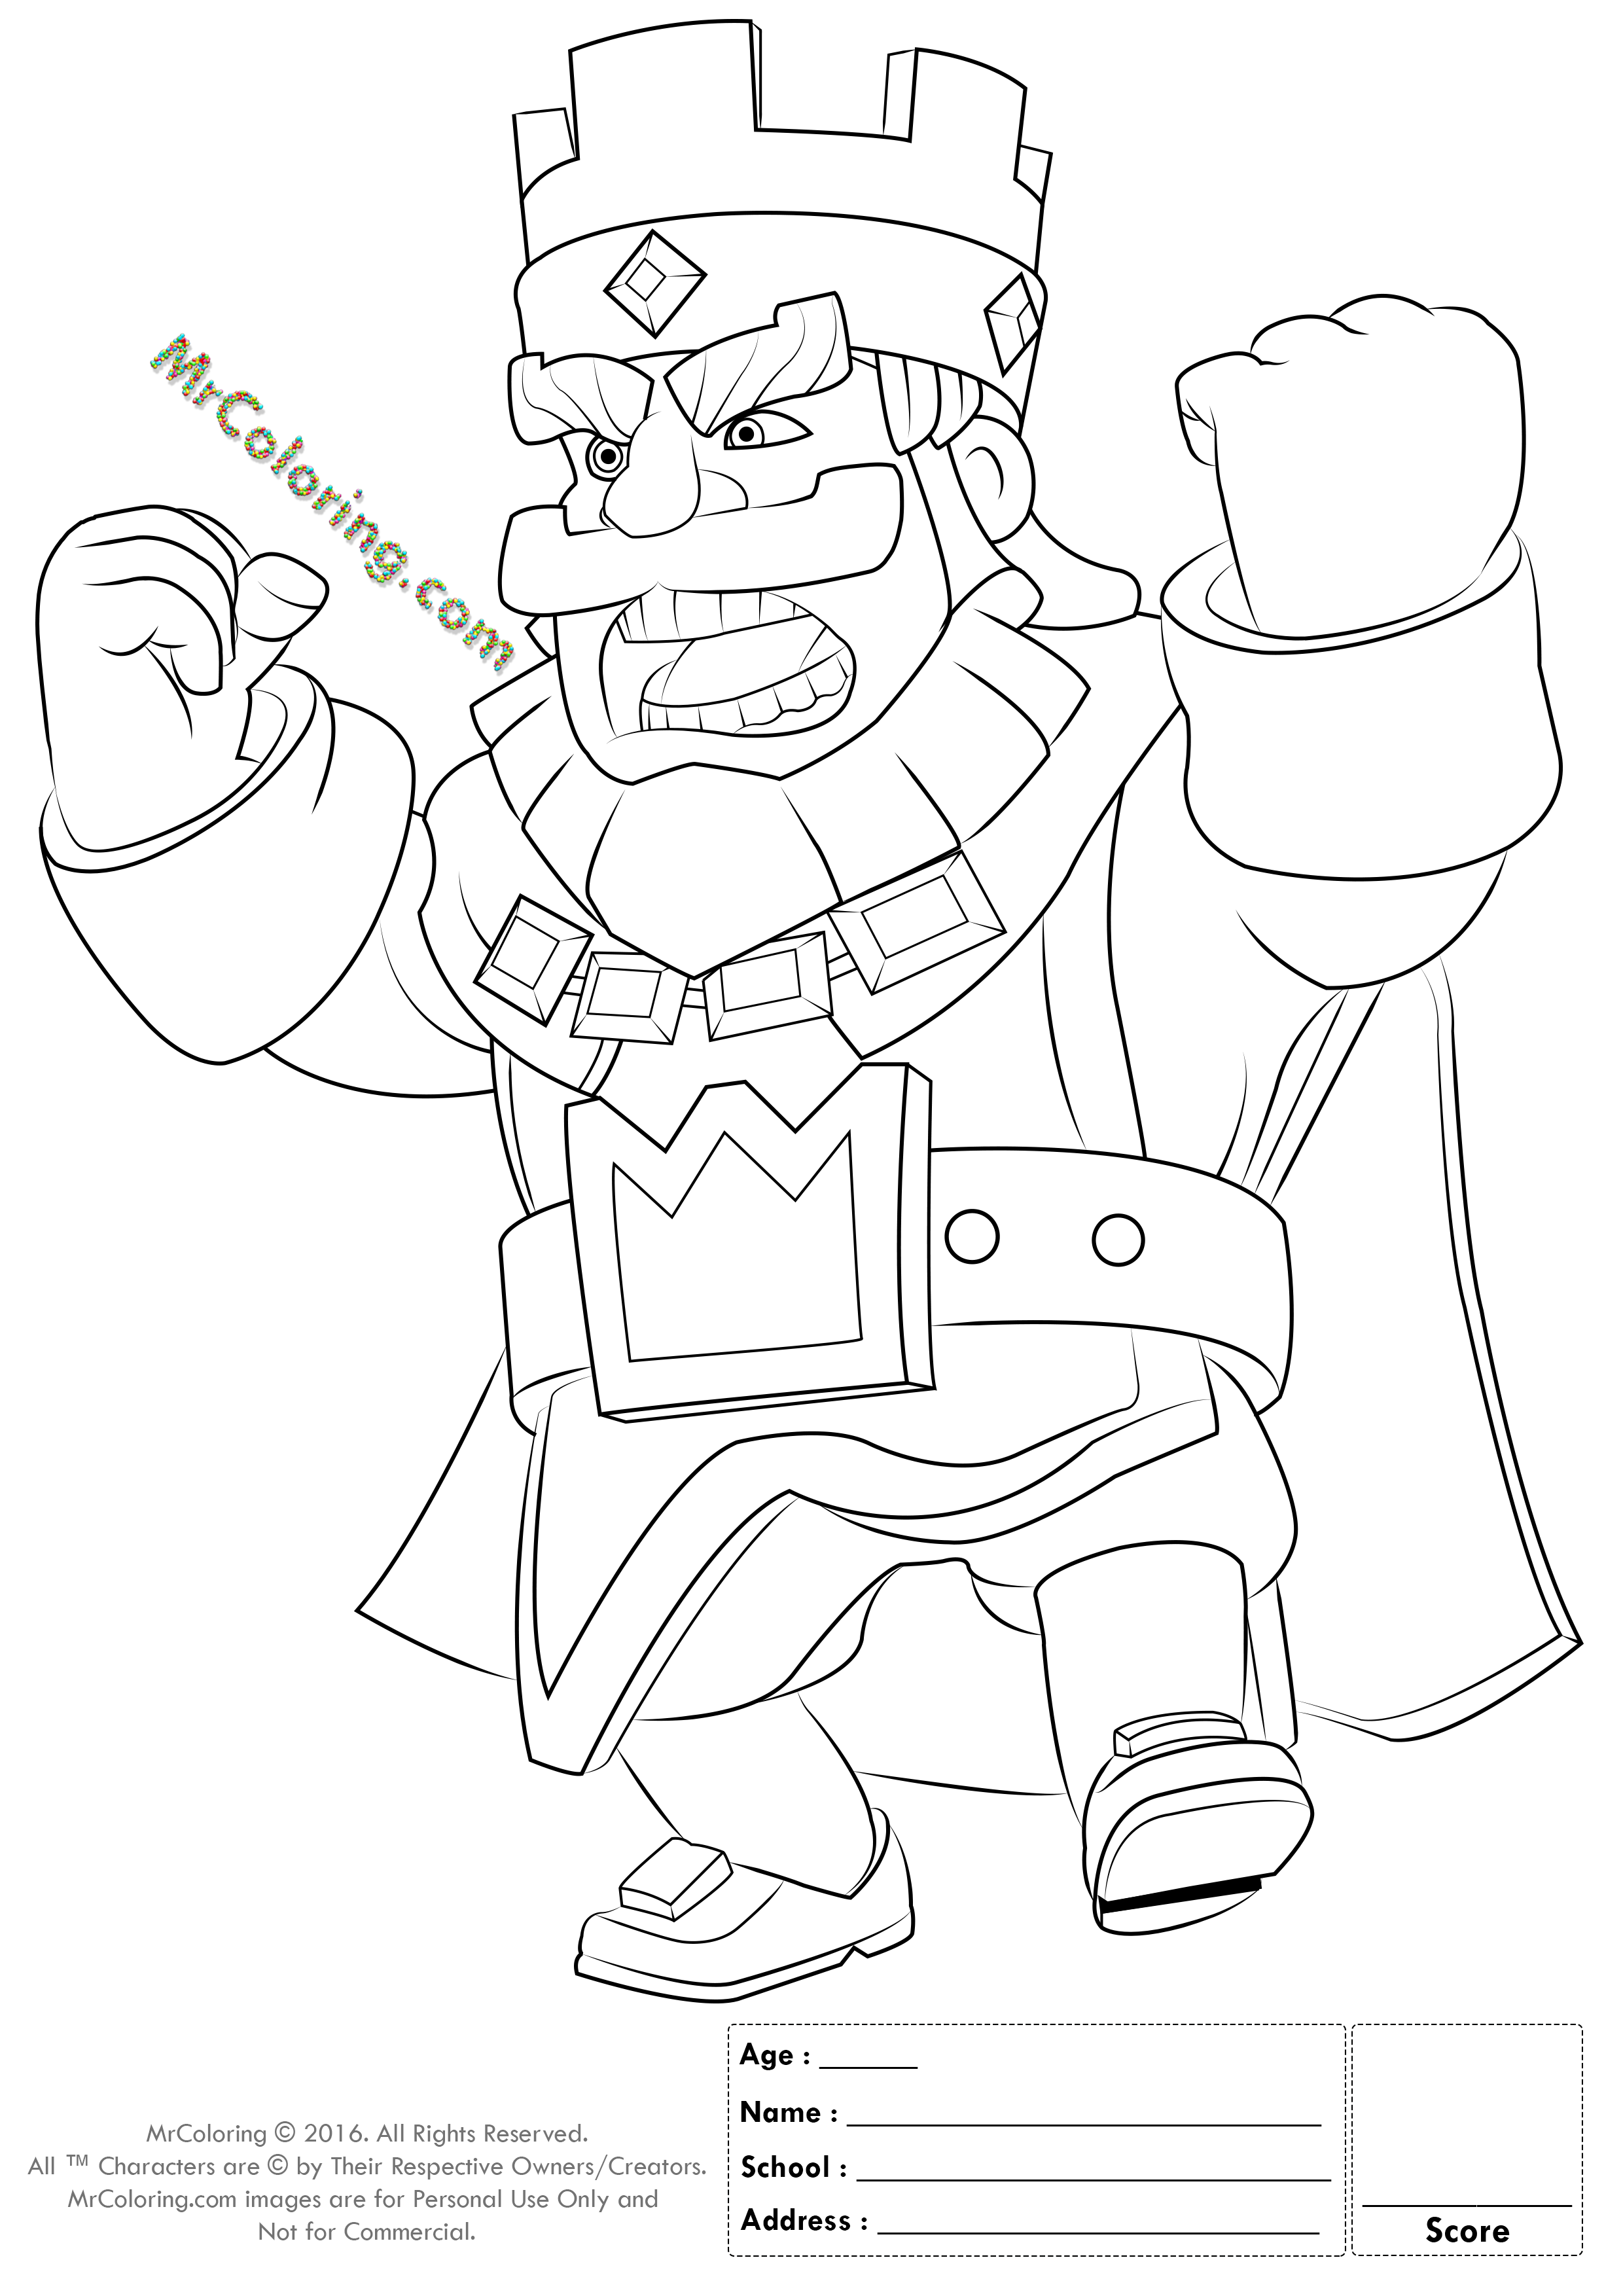 2480x3508 Printable Red King Clash Royale Online Coloring Pages